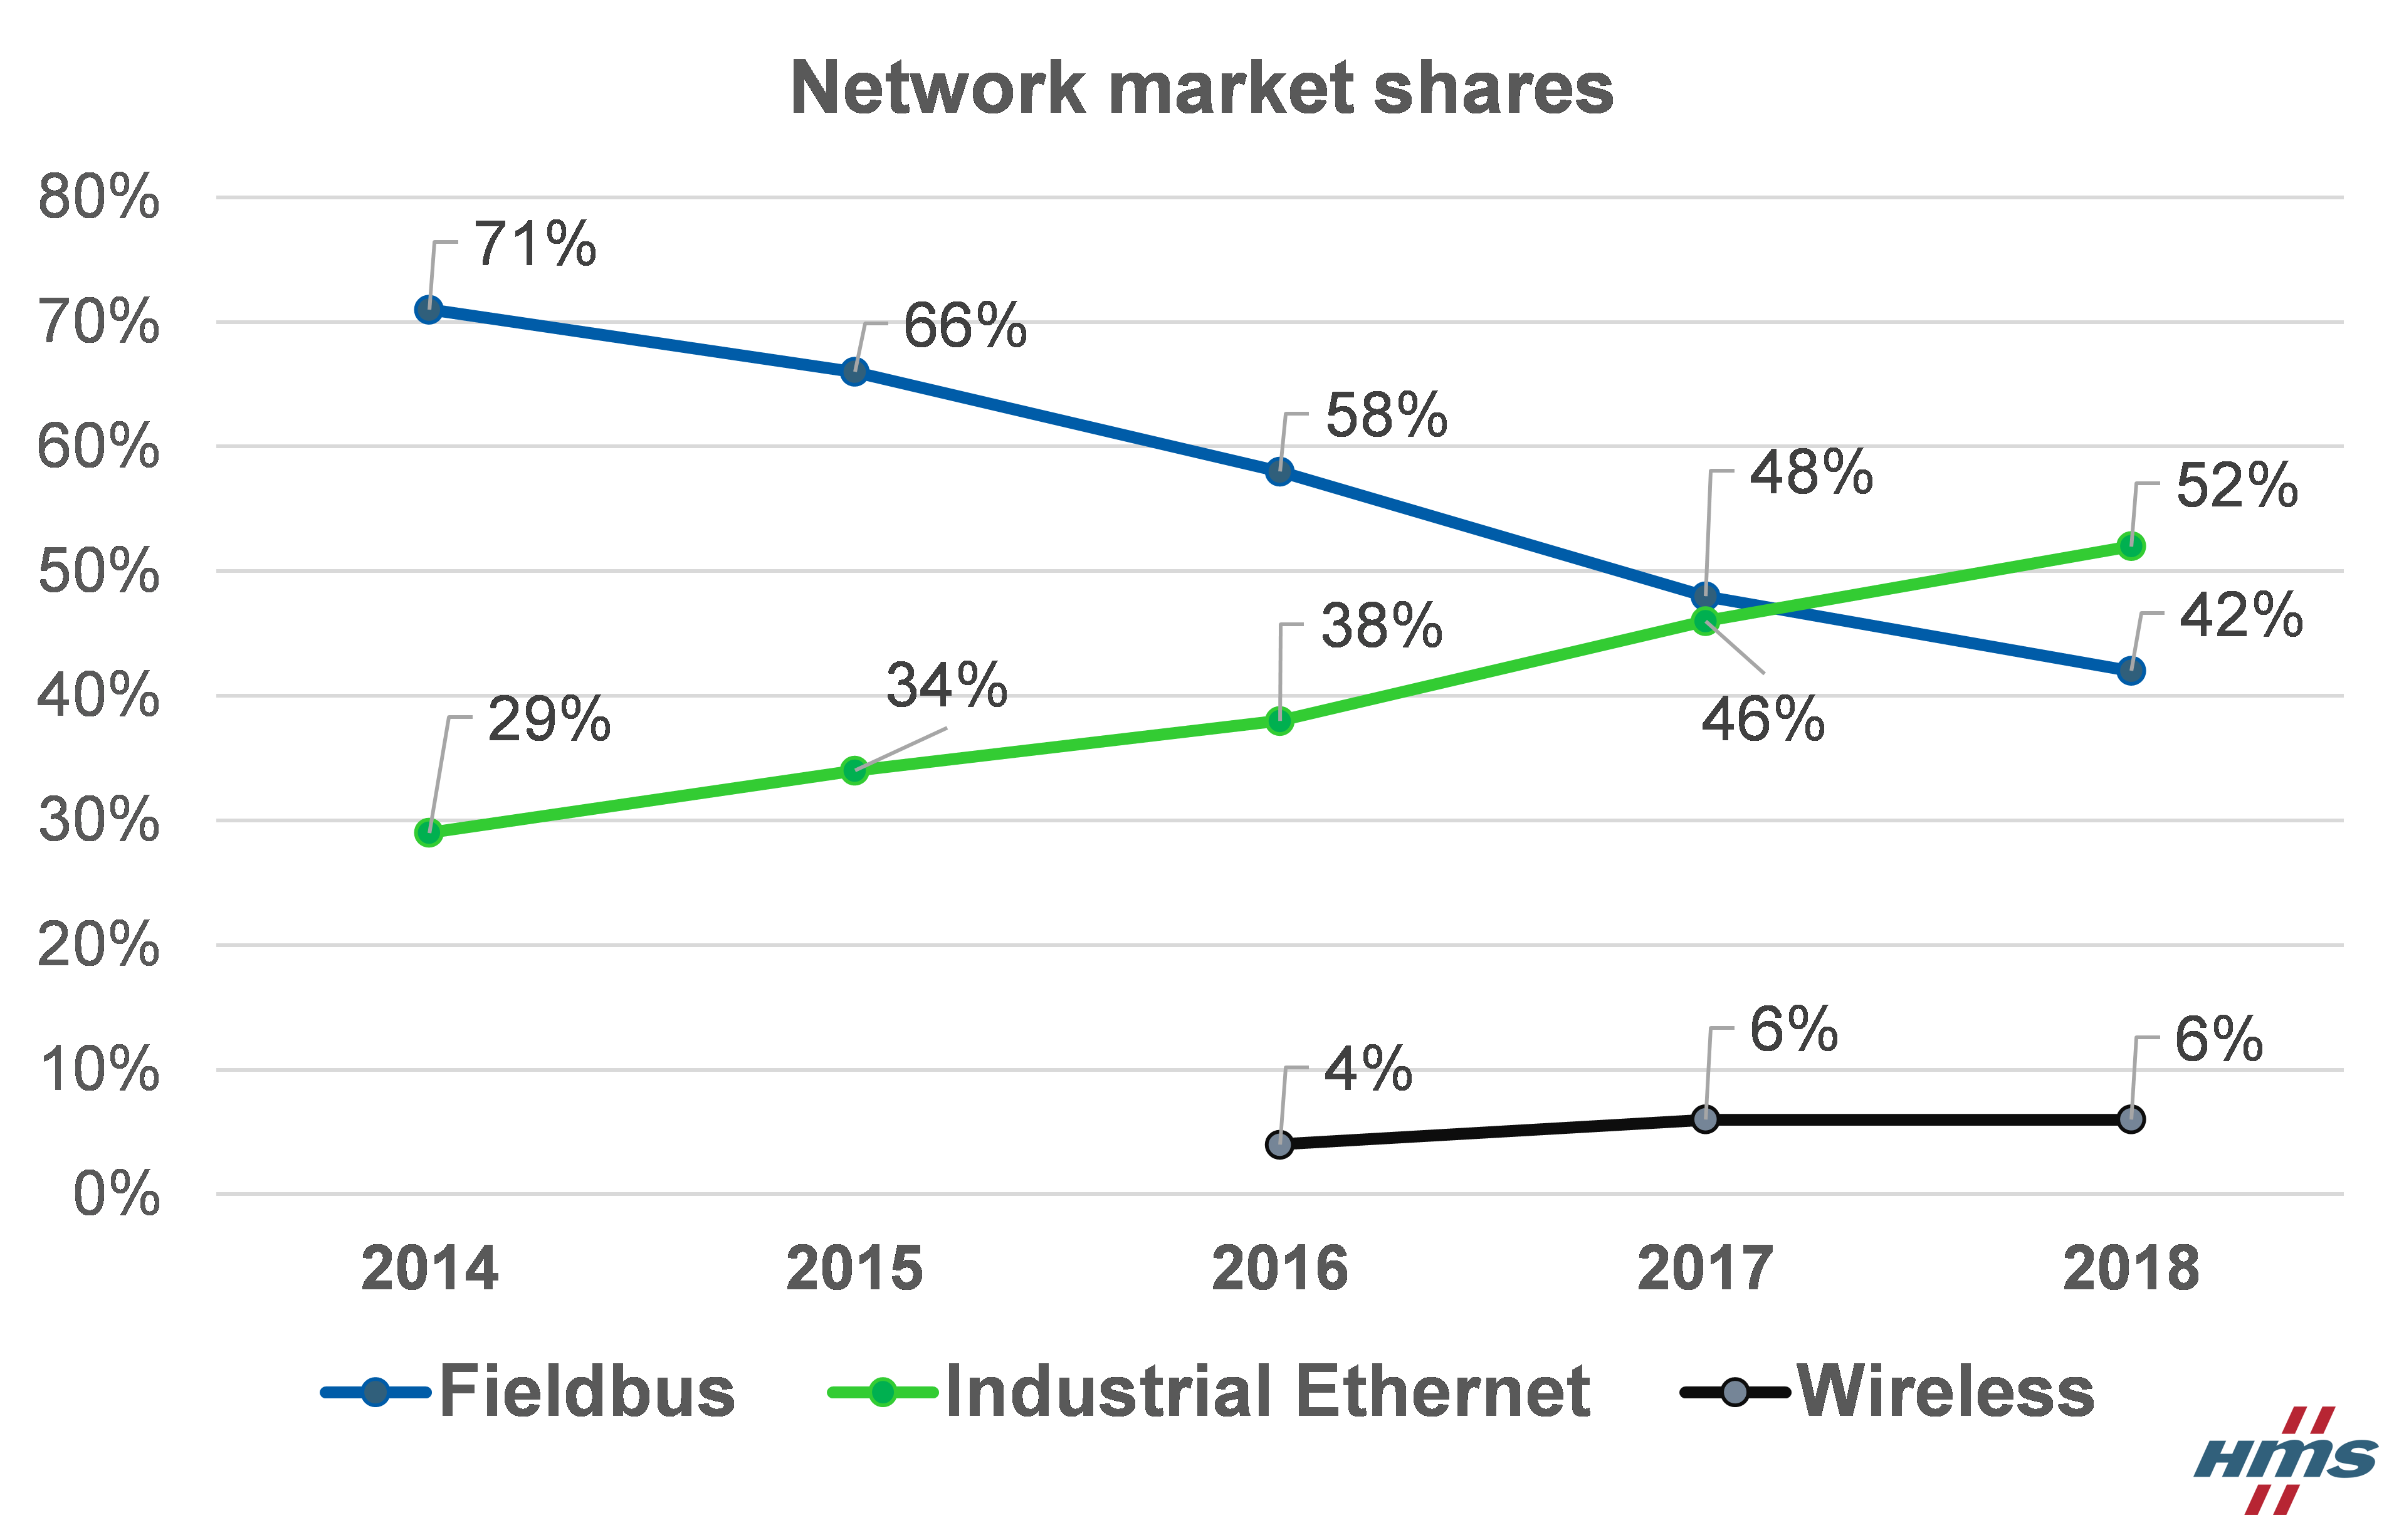 Evolution of fieldbus and Industrial Ethernet market shares, New nodes